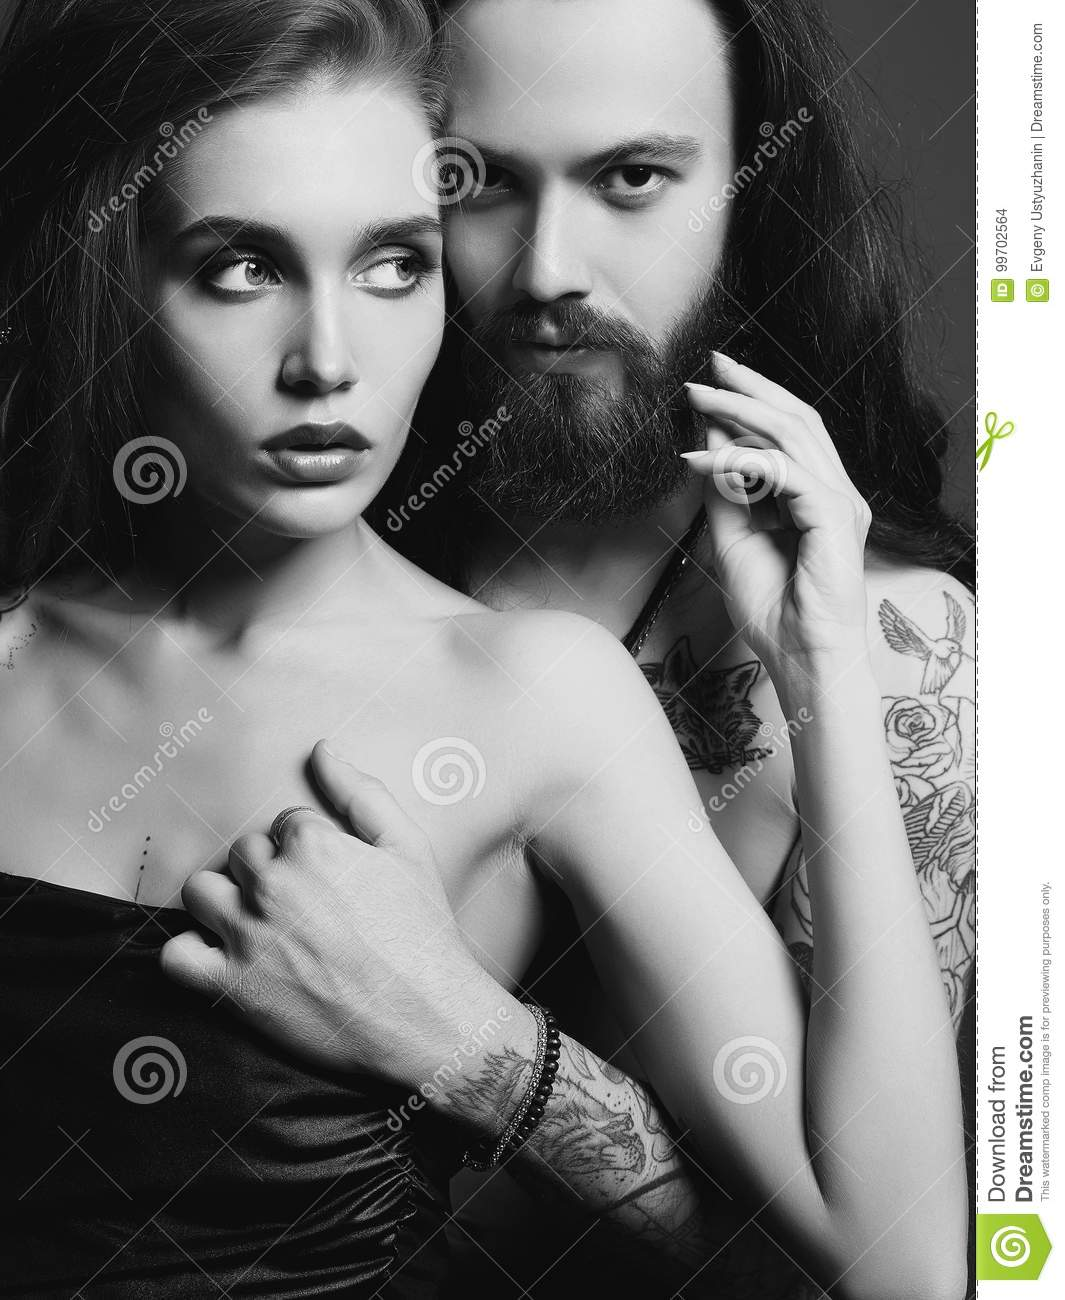 Sexy woman and boy